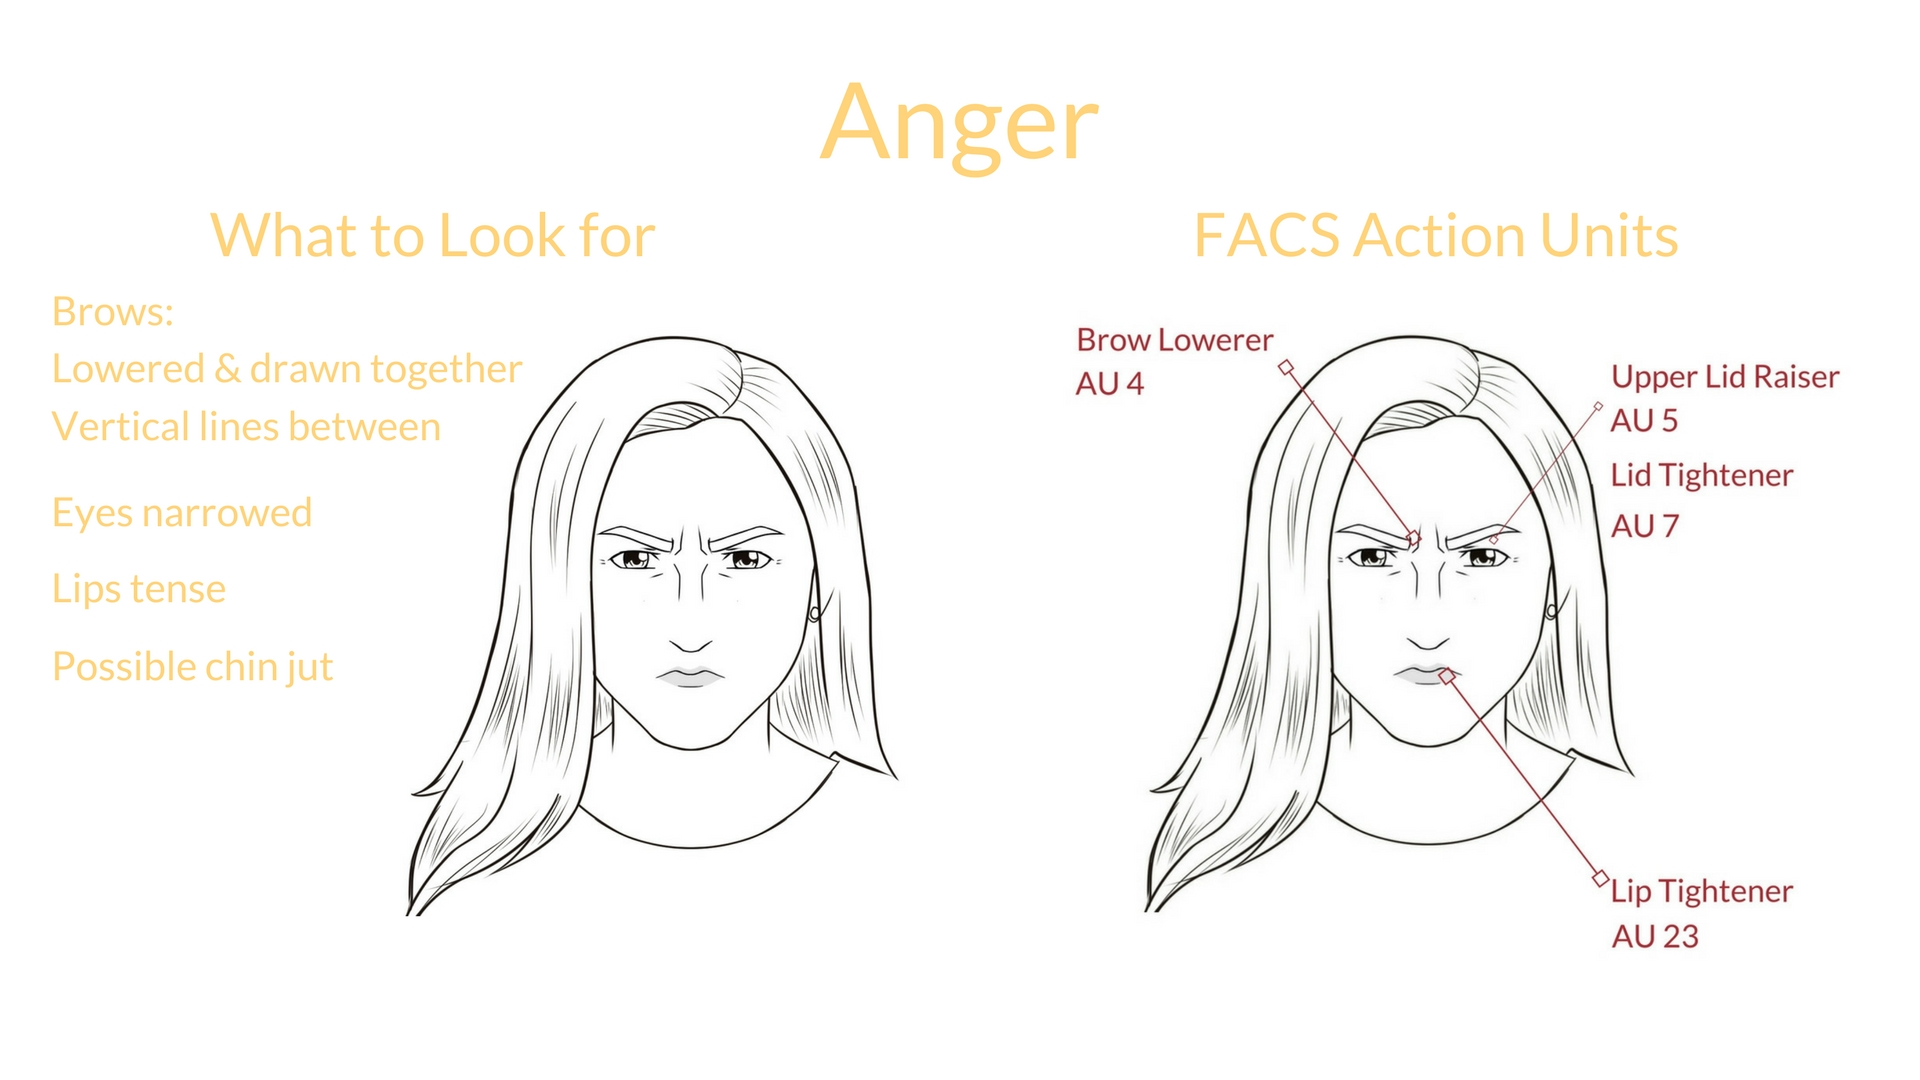 Universal Expression Anger